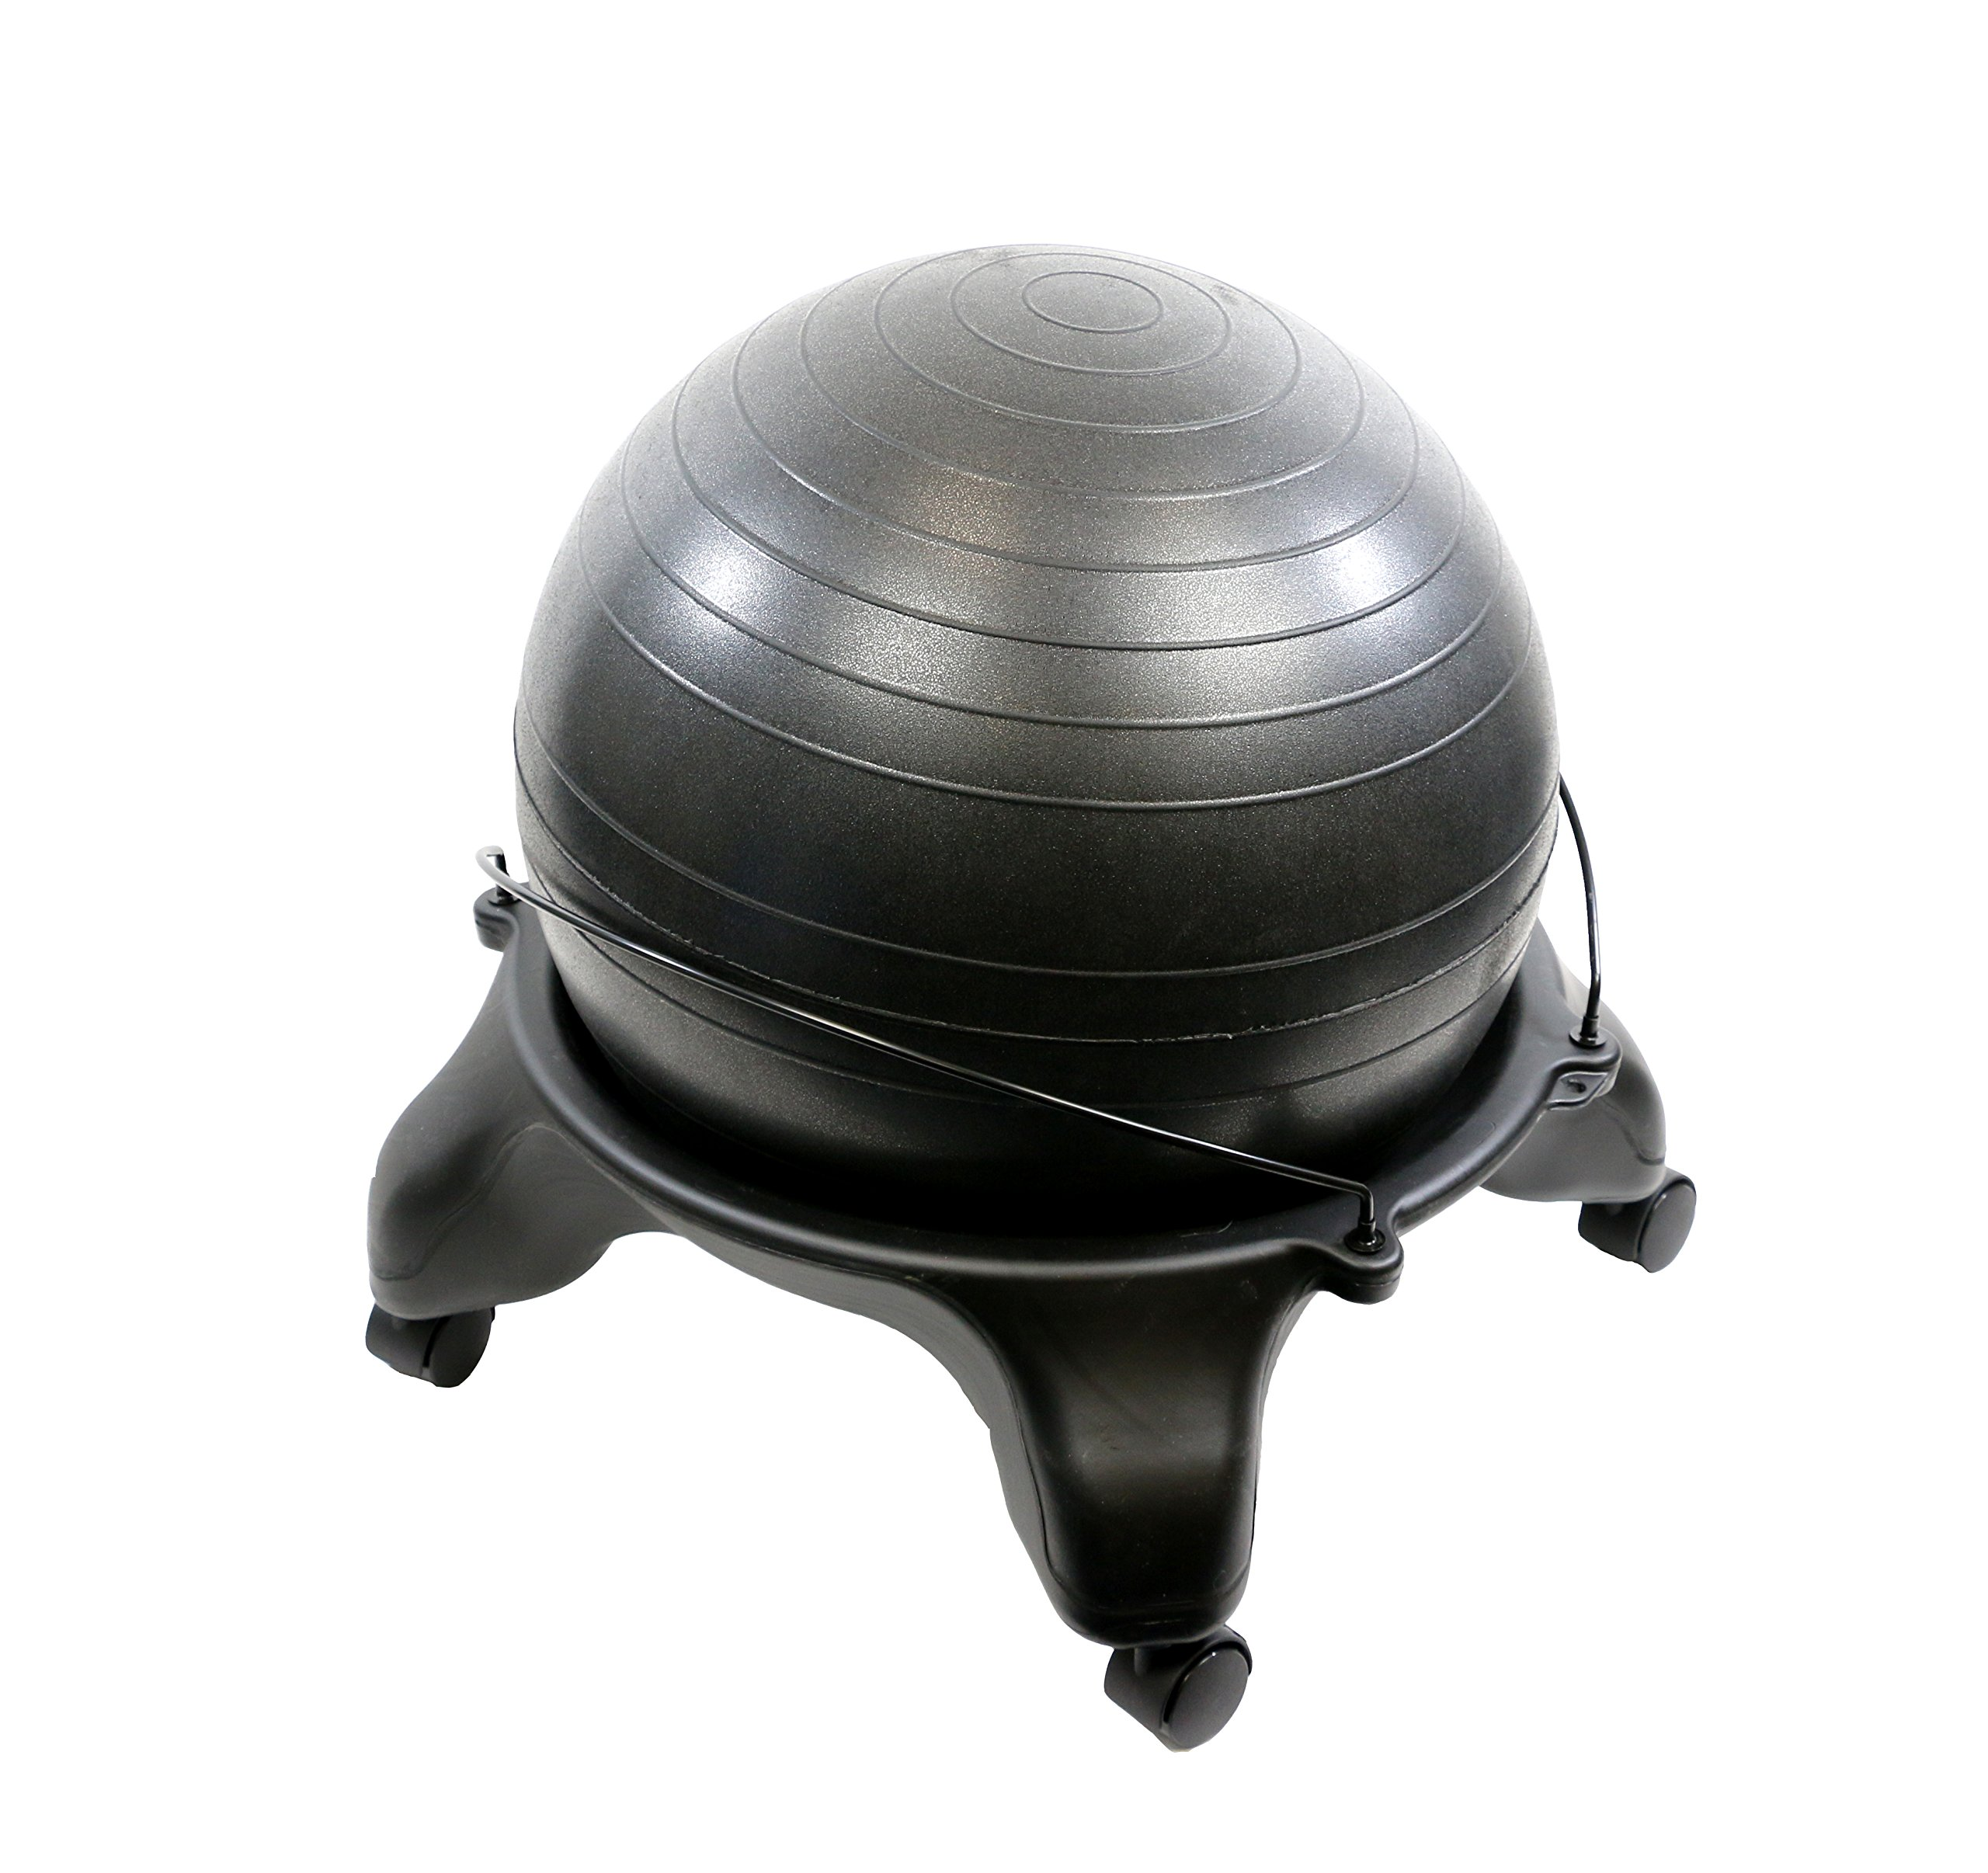 CanDo 30-1796 Ball Stool, Plastic, Mobile, No Back, Adult Size with 22'' by Cando